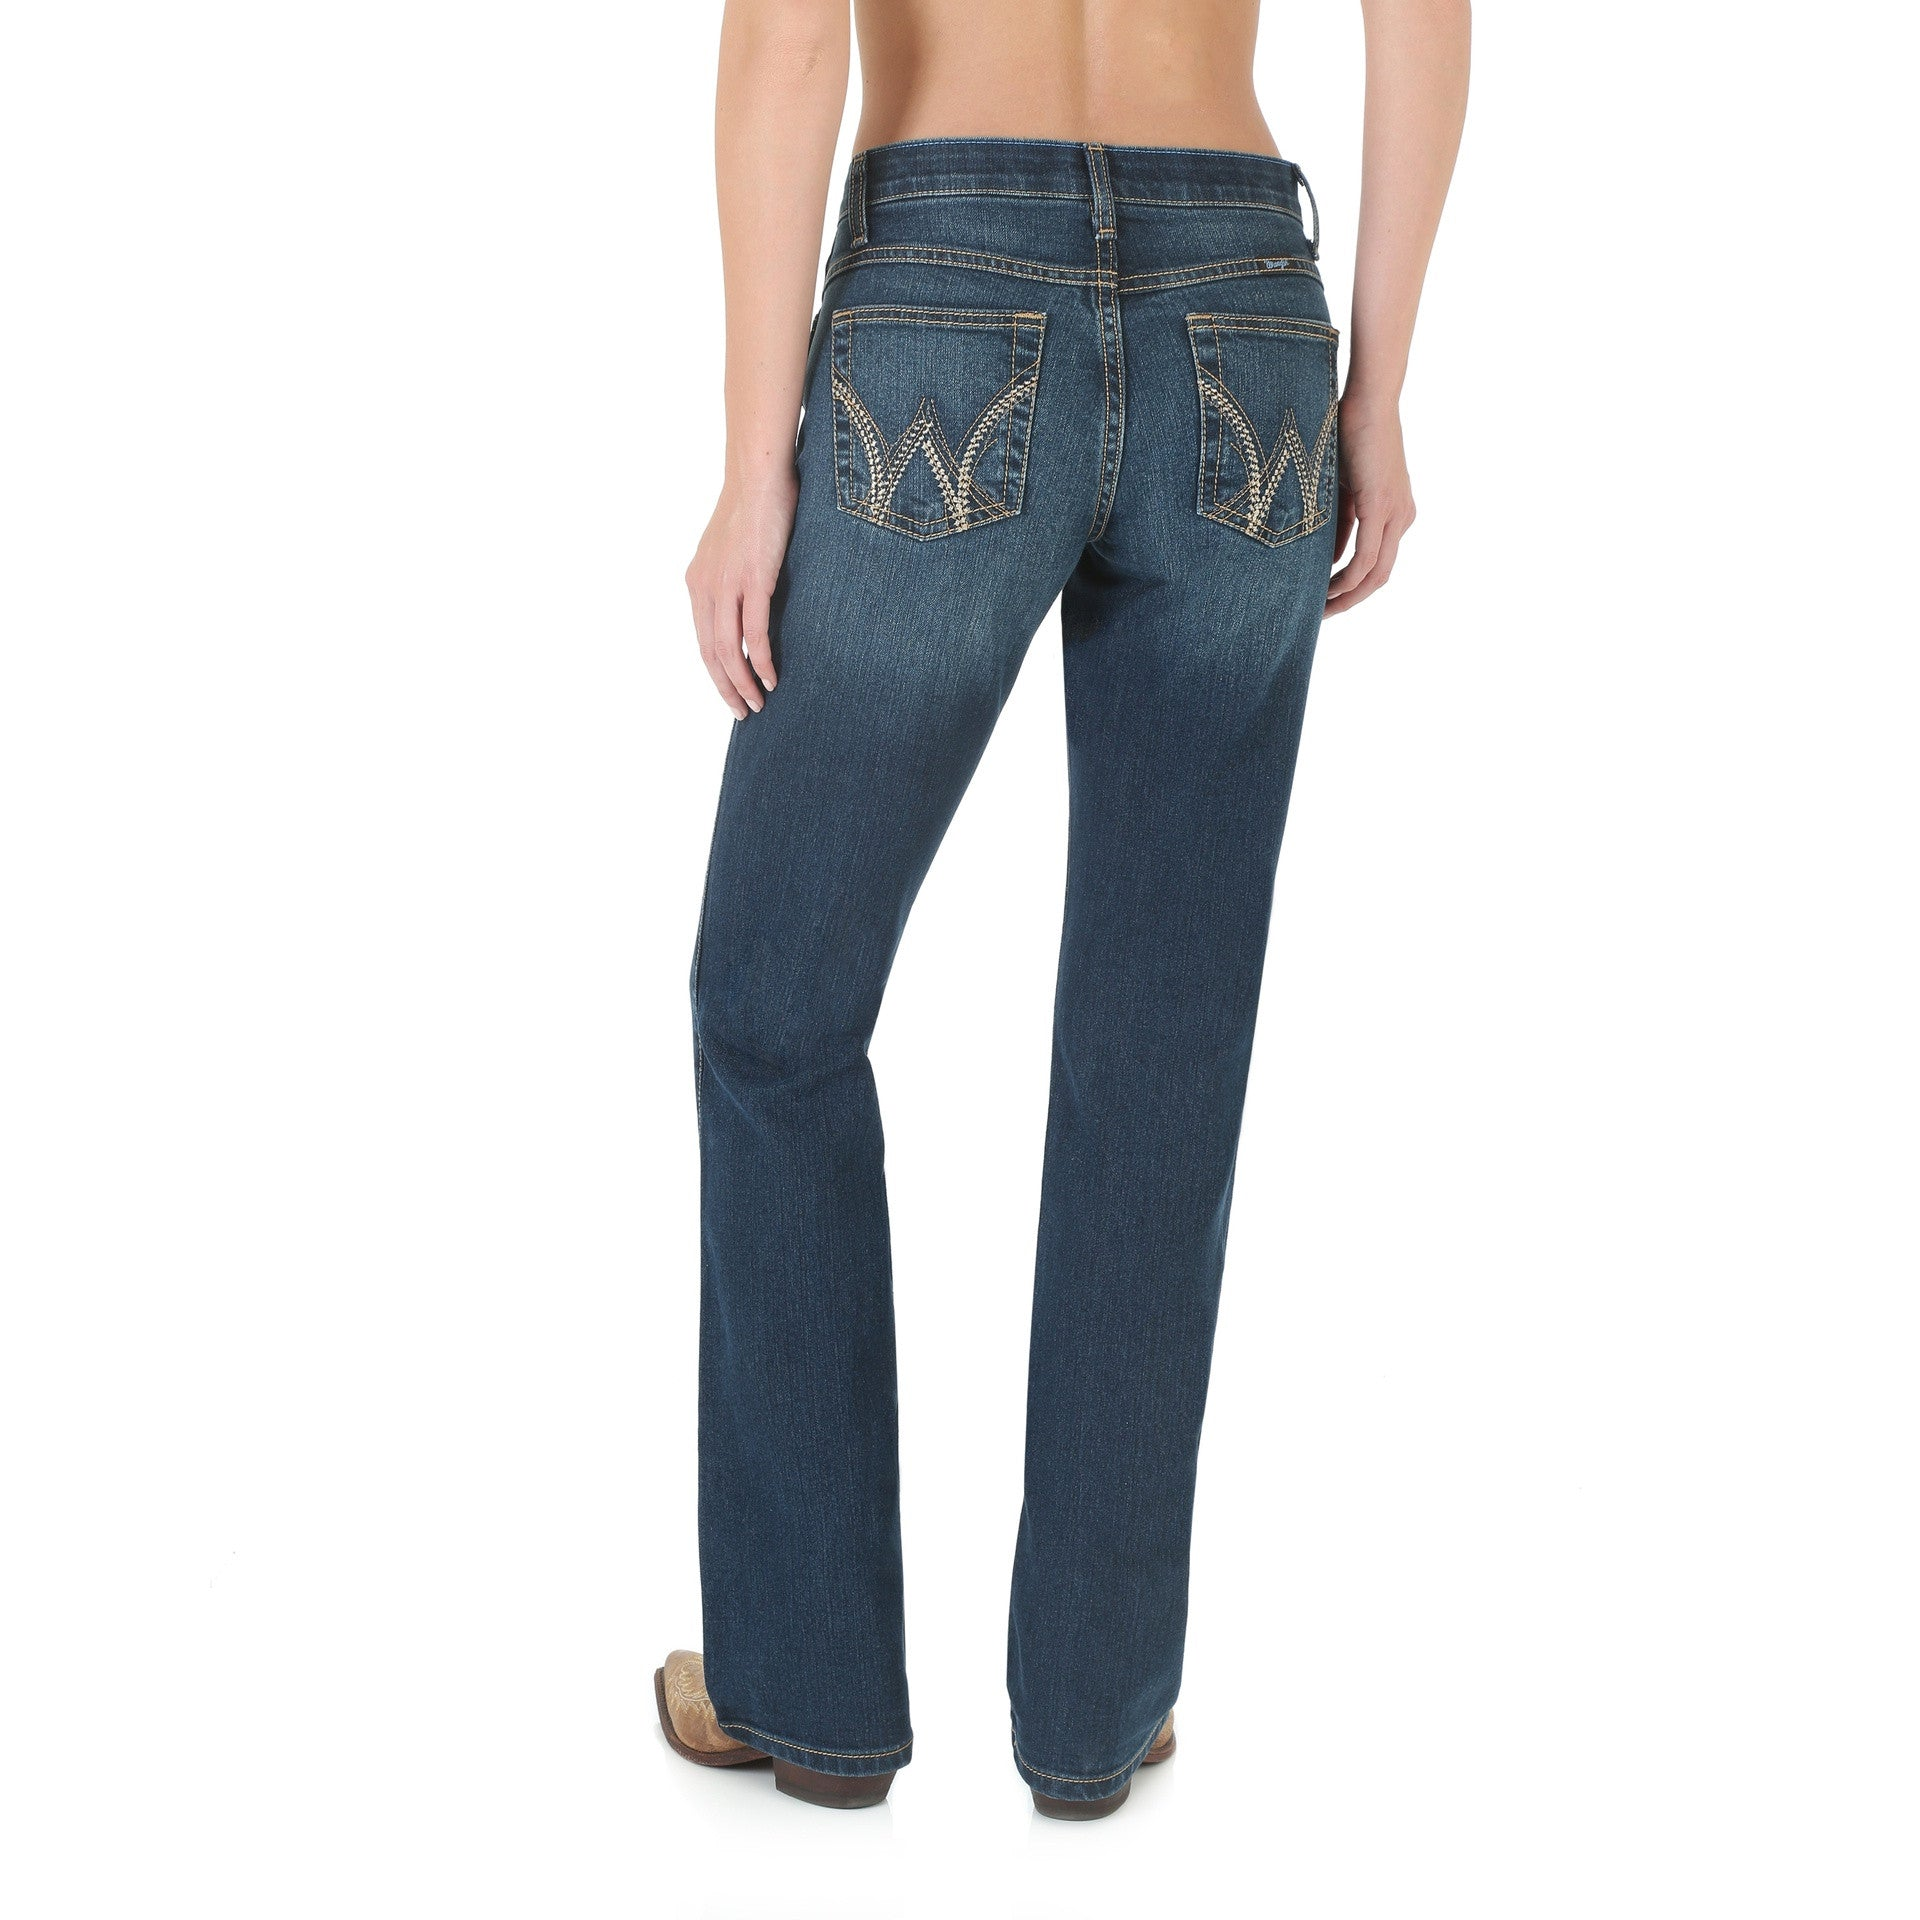 WRANGLER Q BABY COOL VANTAGE Country Soul Stepping Out Western Style